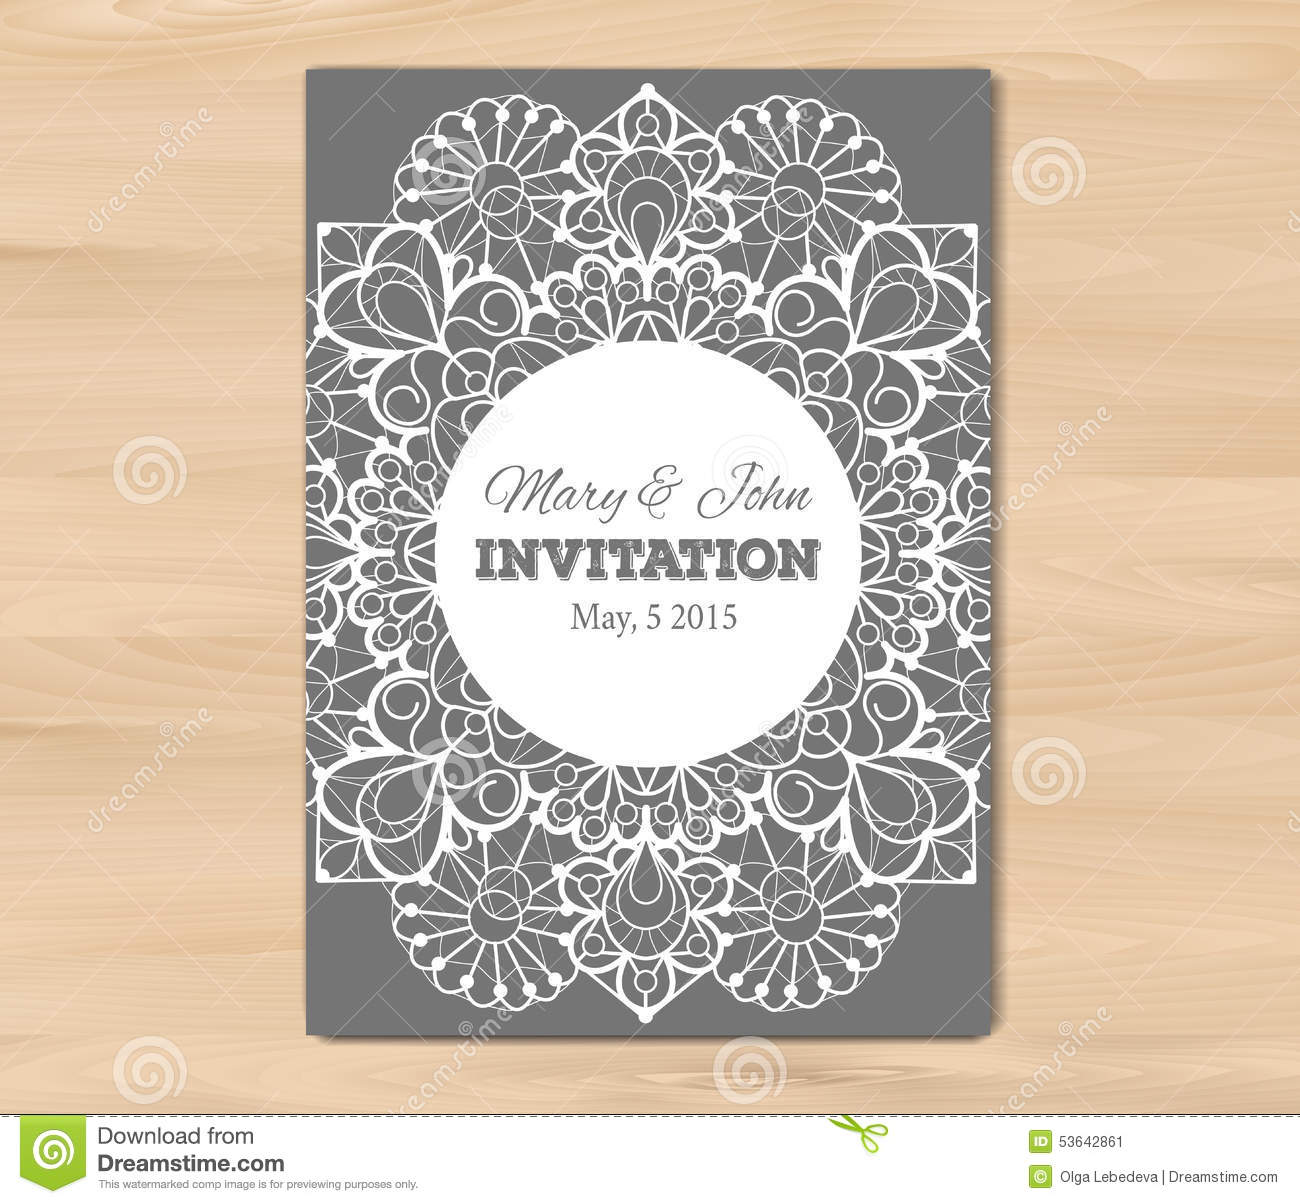 wedding invitation card template stock vector image 53642861. Black Bedroom Furniture Sets. Home Design Ideas